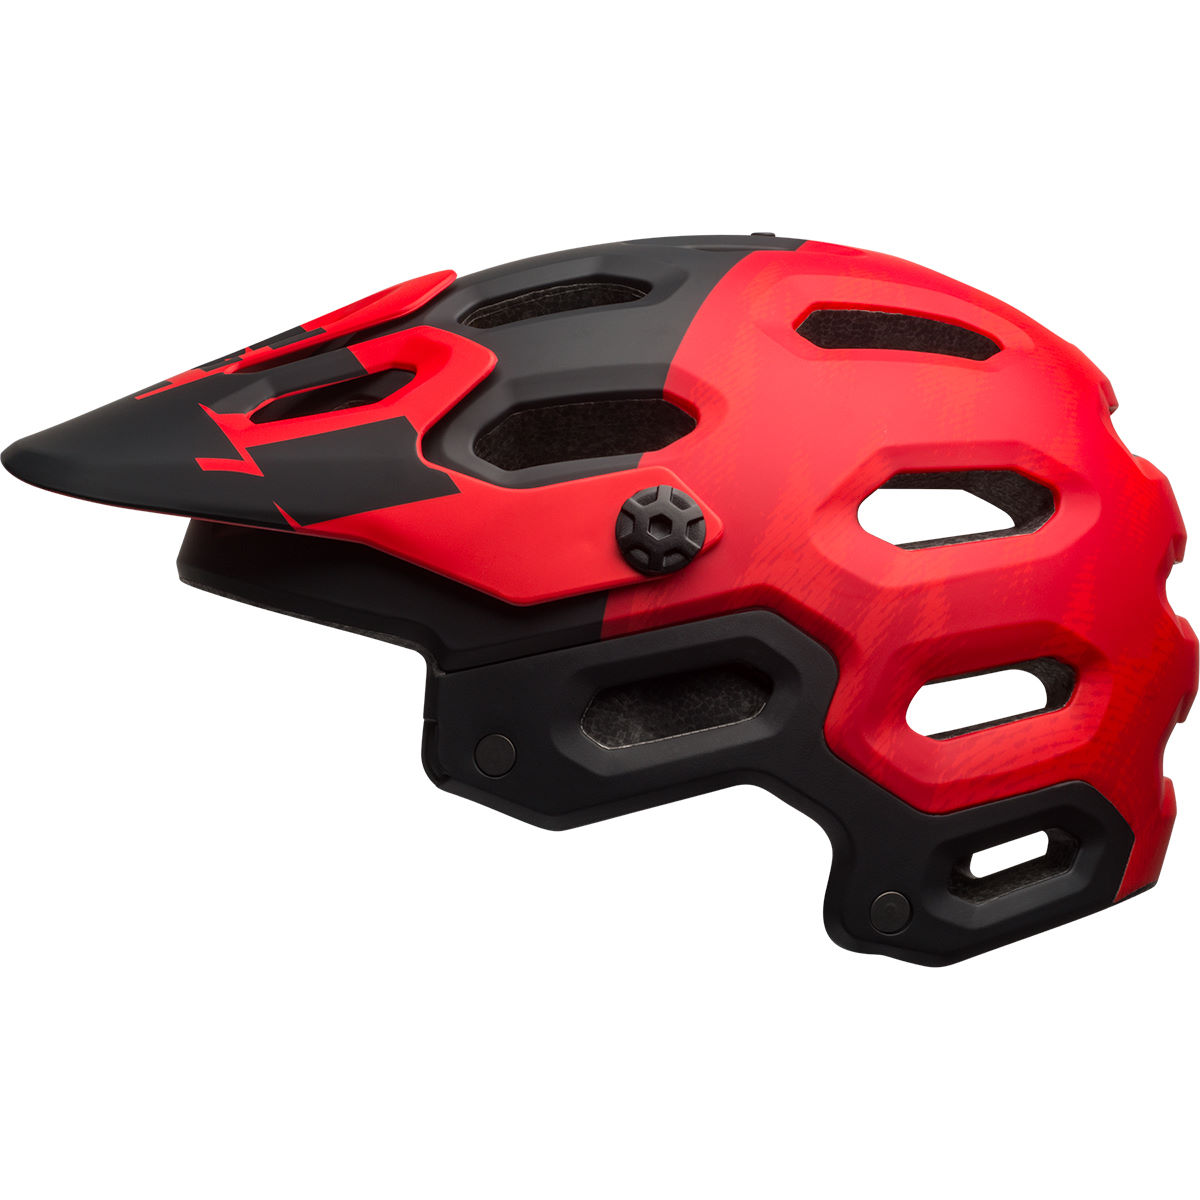 Casque Bell Super 3 - M Matte Red/Marsala/Bl Casques VTT